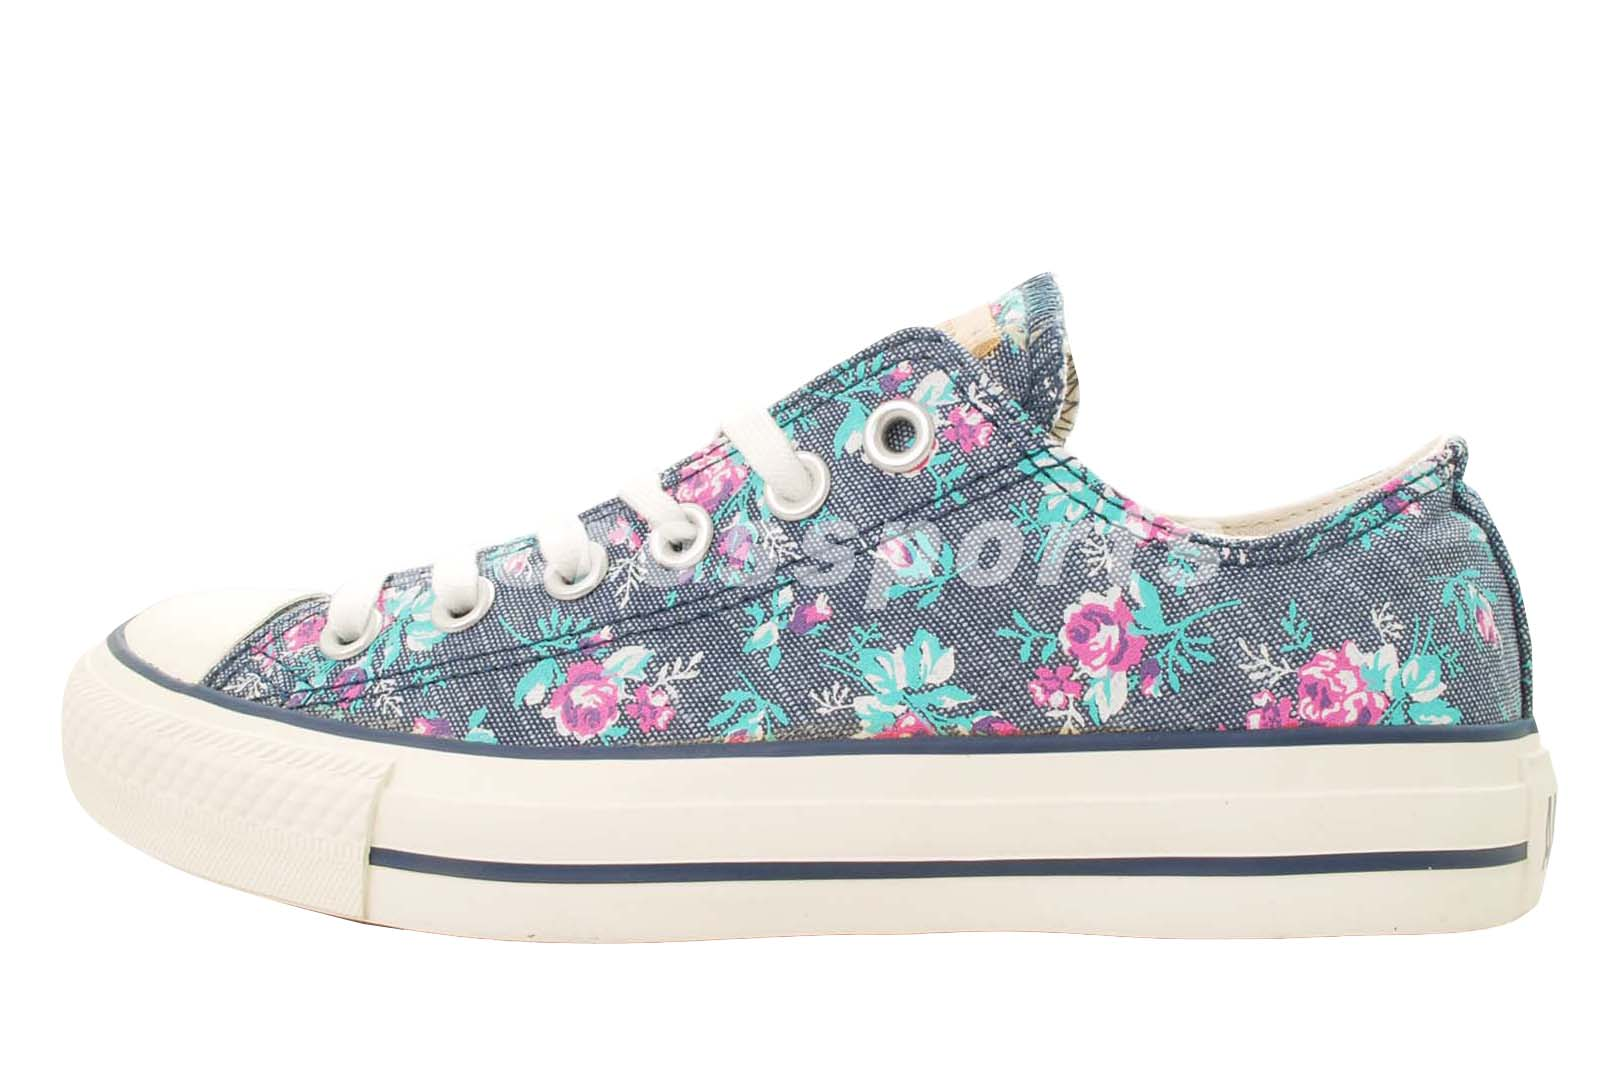 434ed63a5e3d Converse Chuck Taylor All Star OX Low Floral Womens Casual Shoes 1131W170104